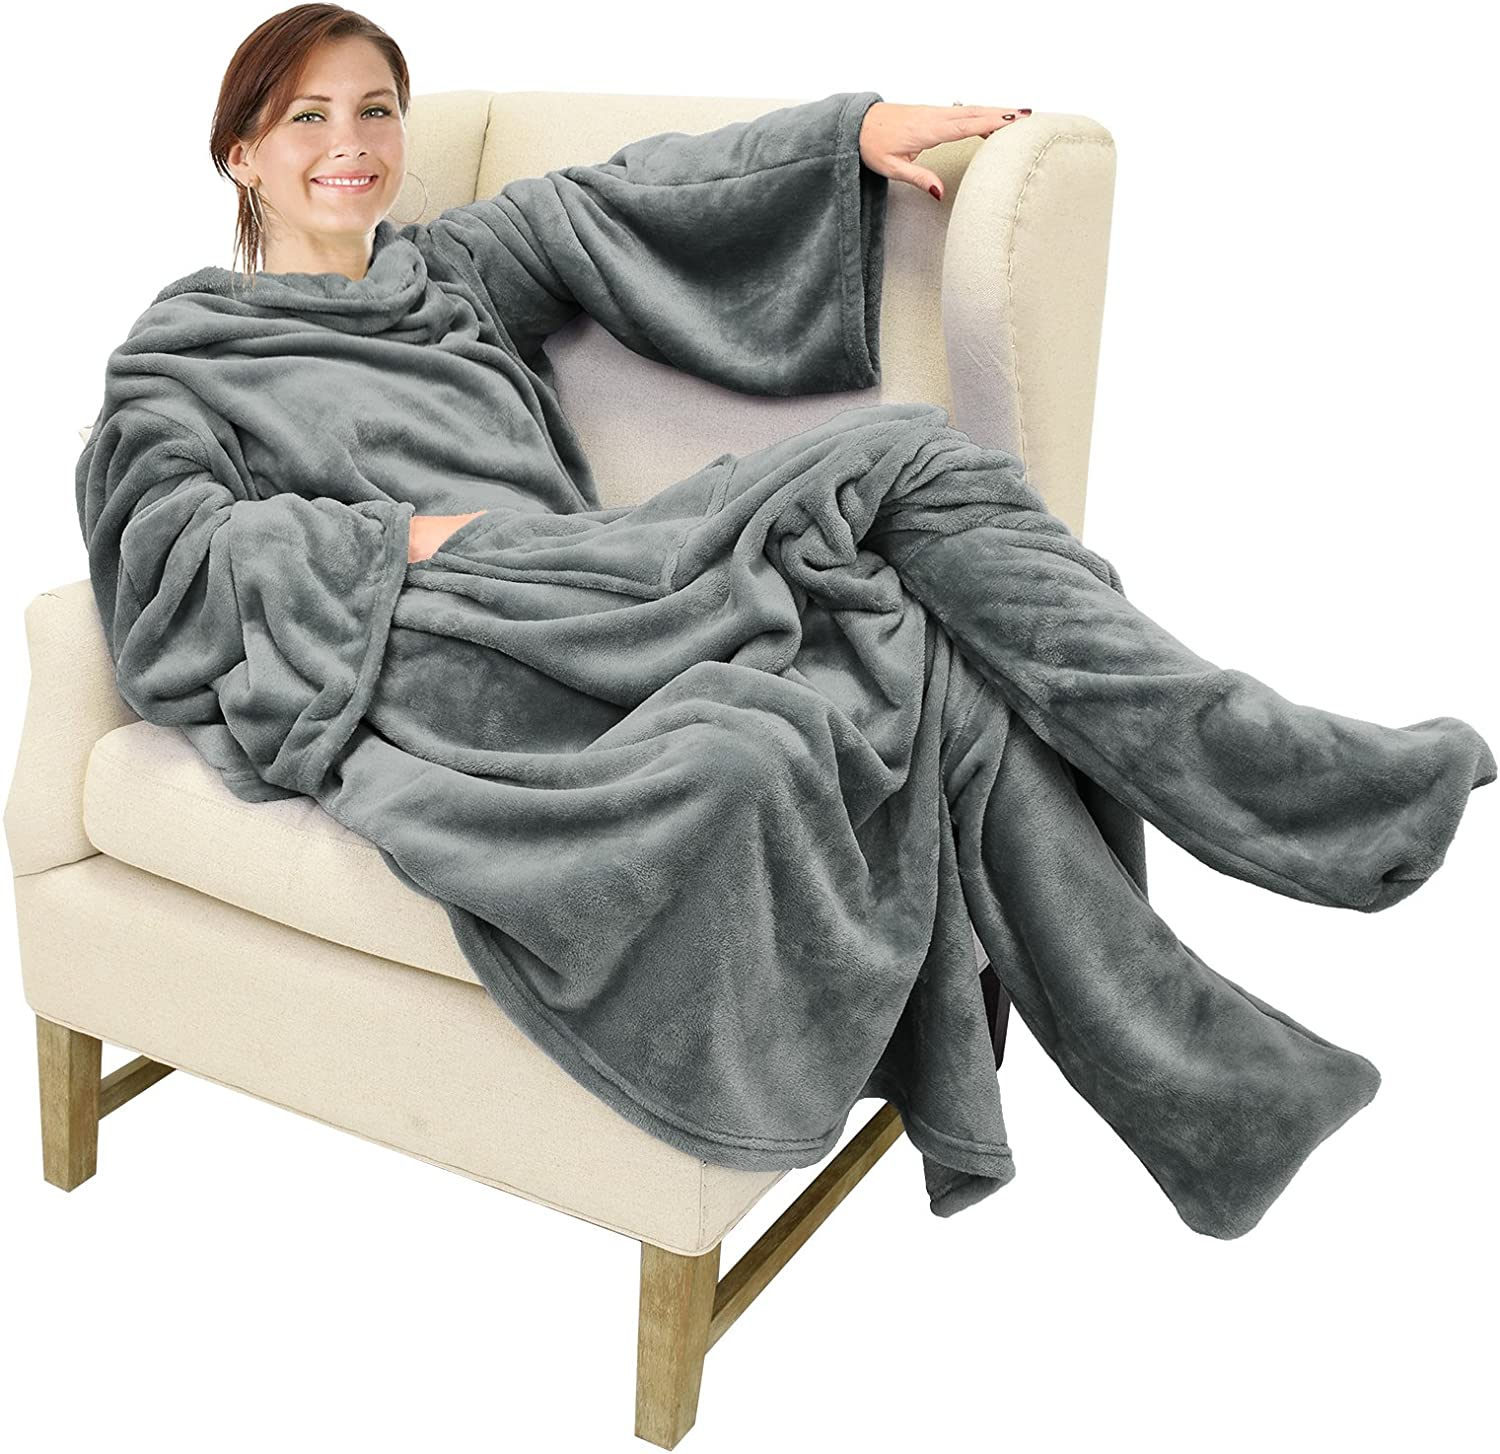 Catalonia Classy Wearable Snuggle Blanket with Sleeves and Foot Pocket Grey Soft Cosy Fleece Slankets for Women Warm Fluffy Plush Throws Winter TV Blanket for Sofa Couch 190 x 135 cm